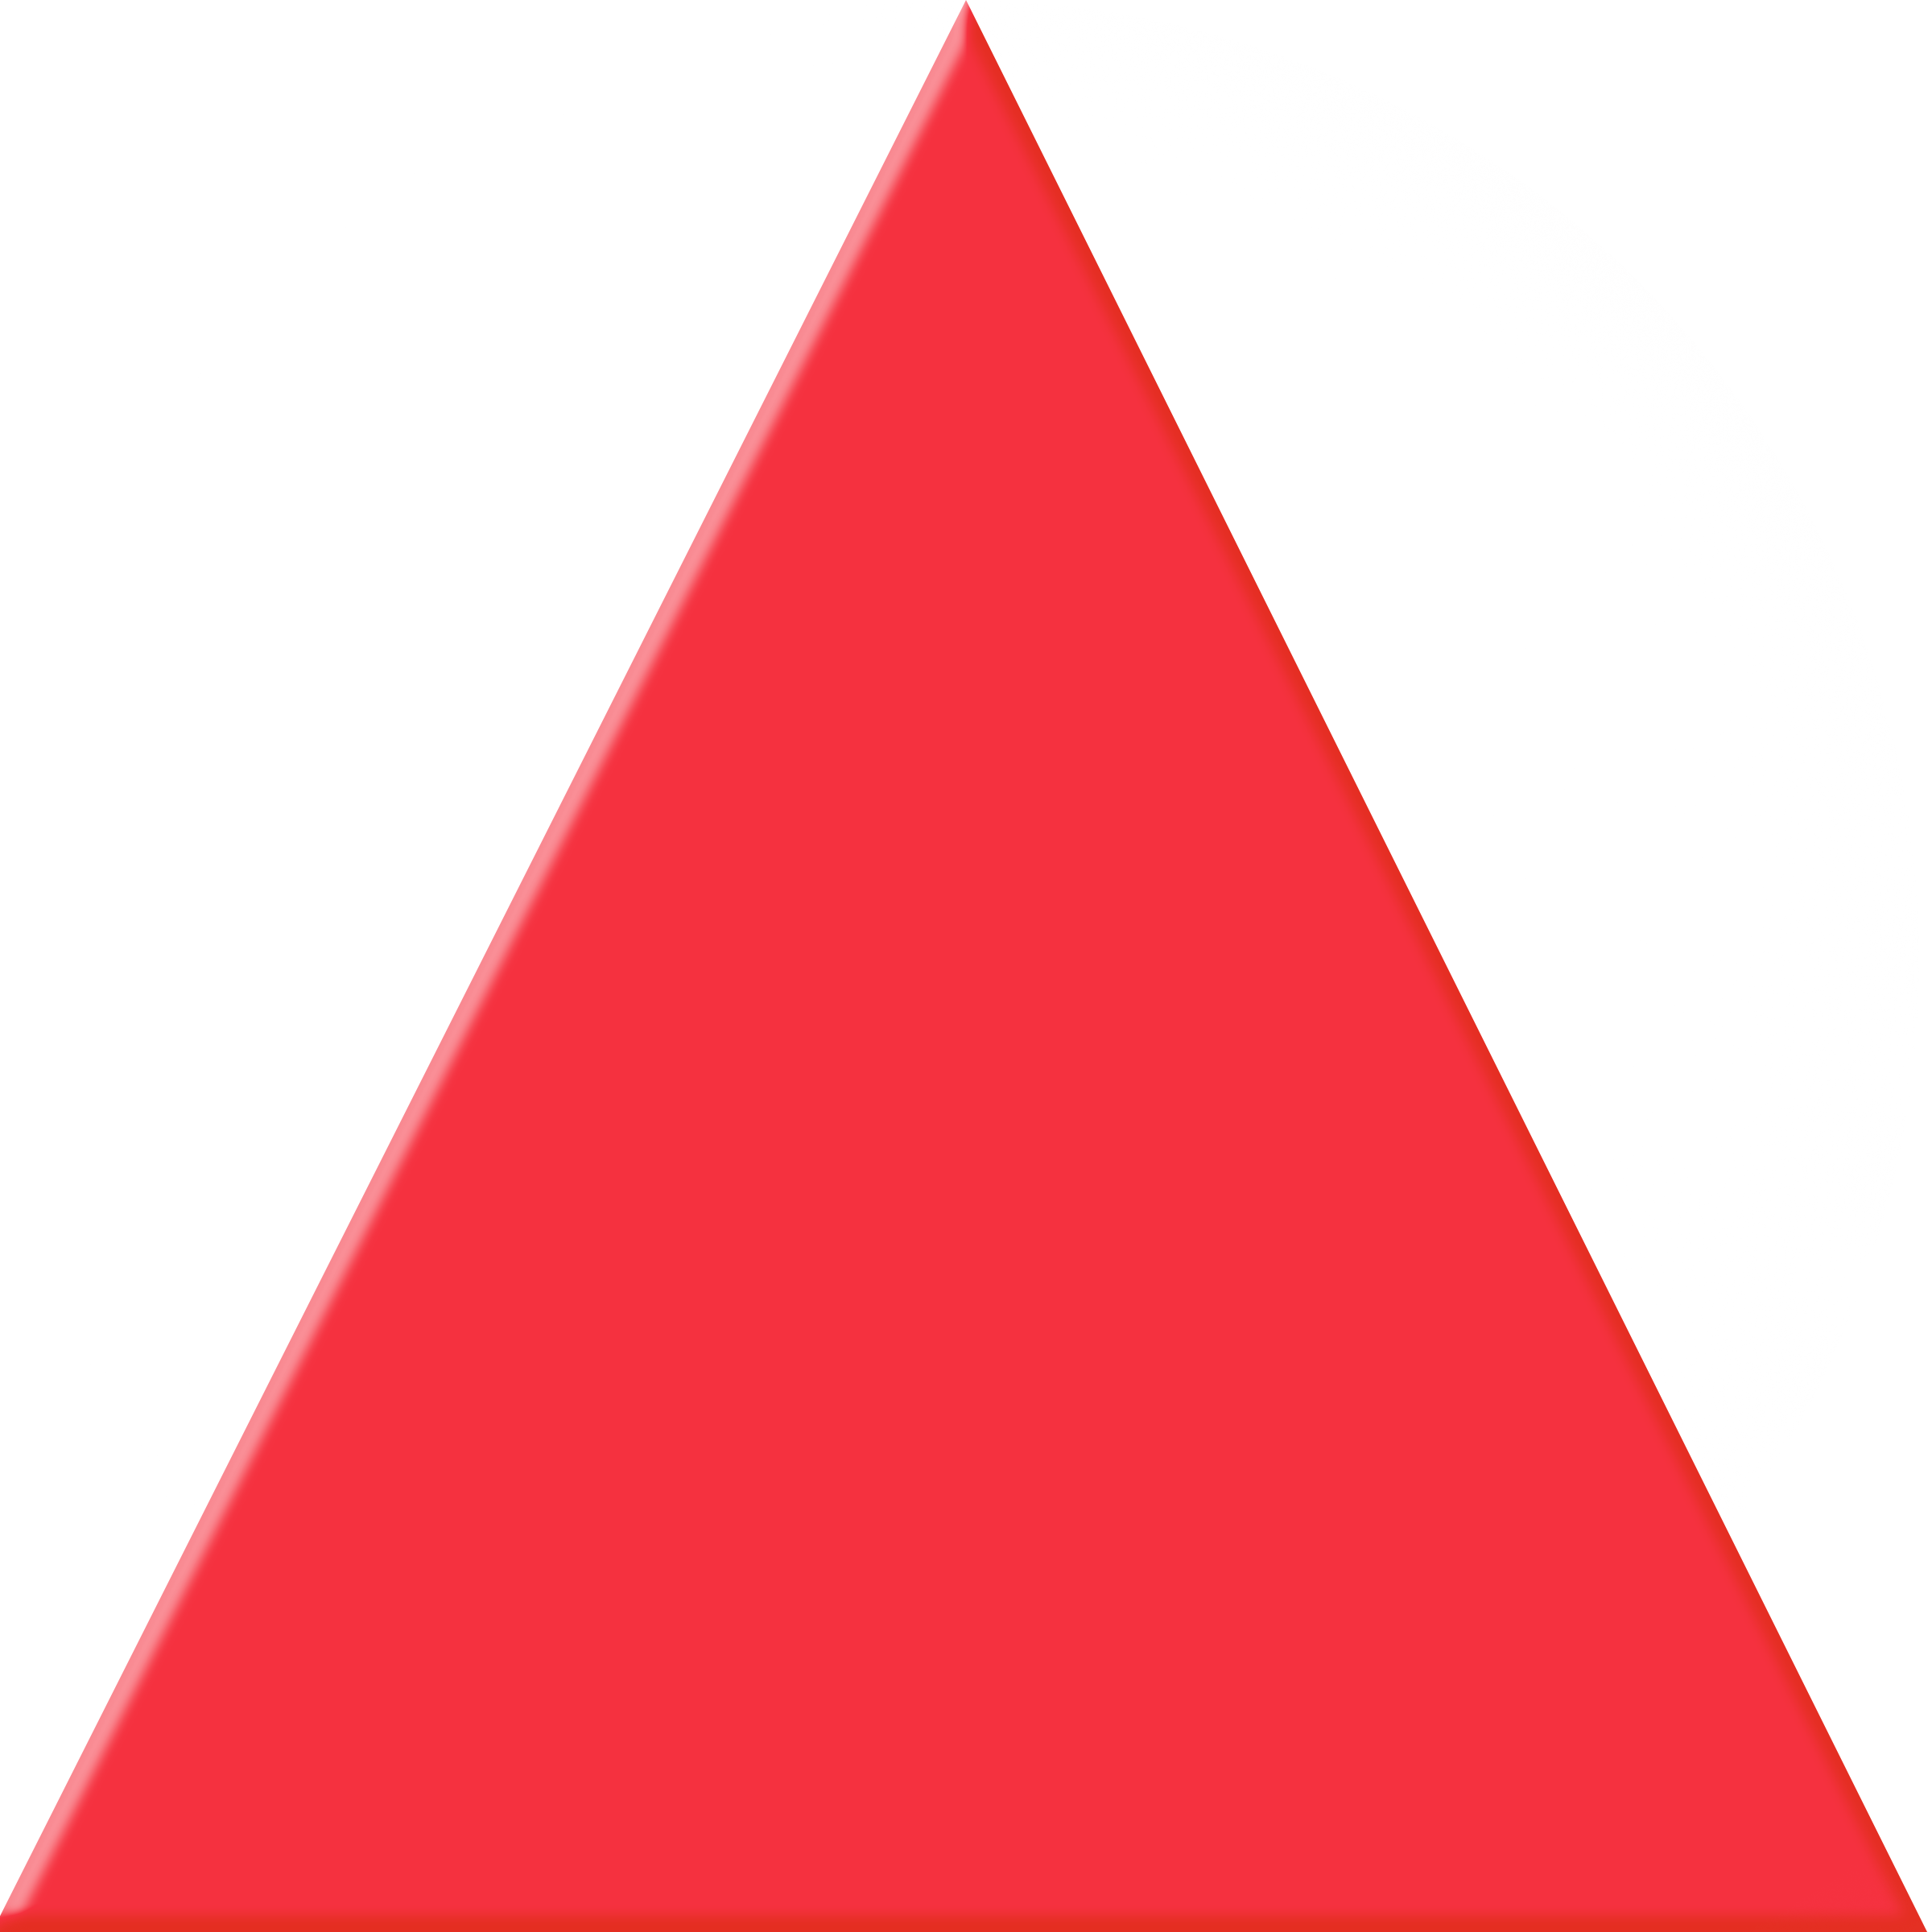 Png transparent image mart. Triangle clipart vector